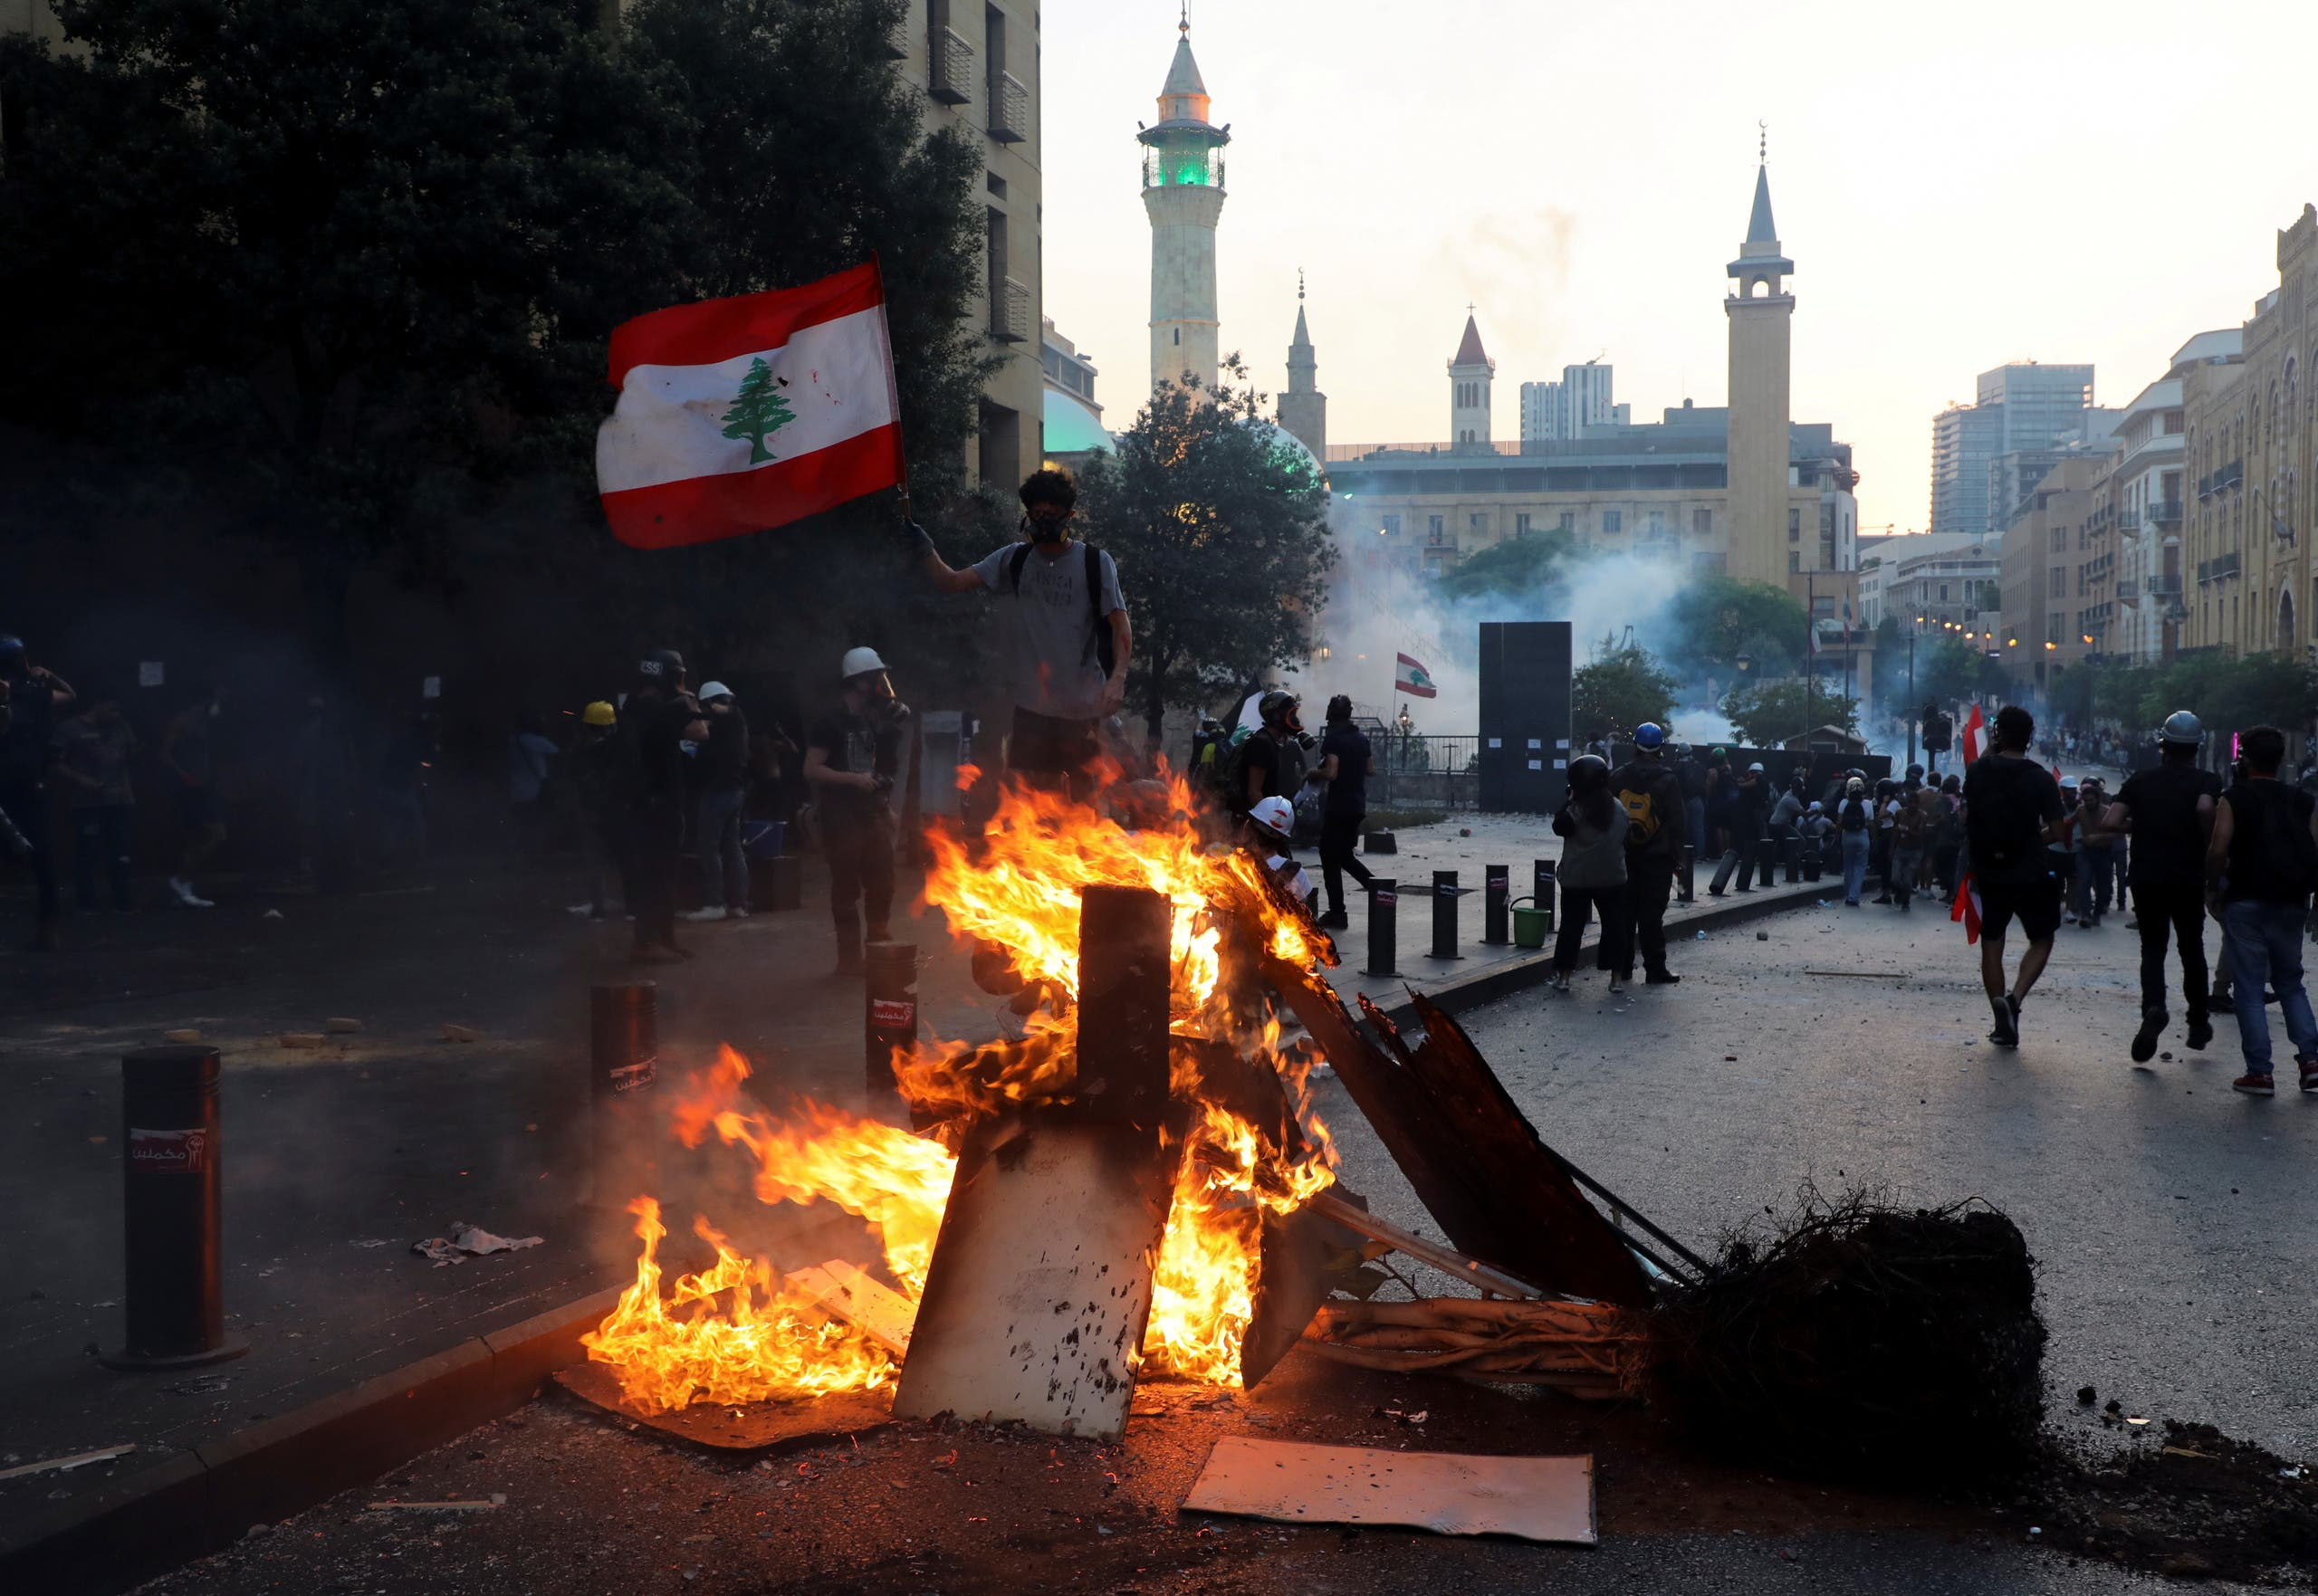 From the struggles that took place today in Beirut